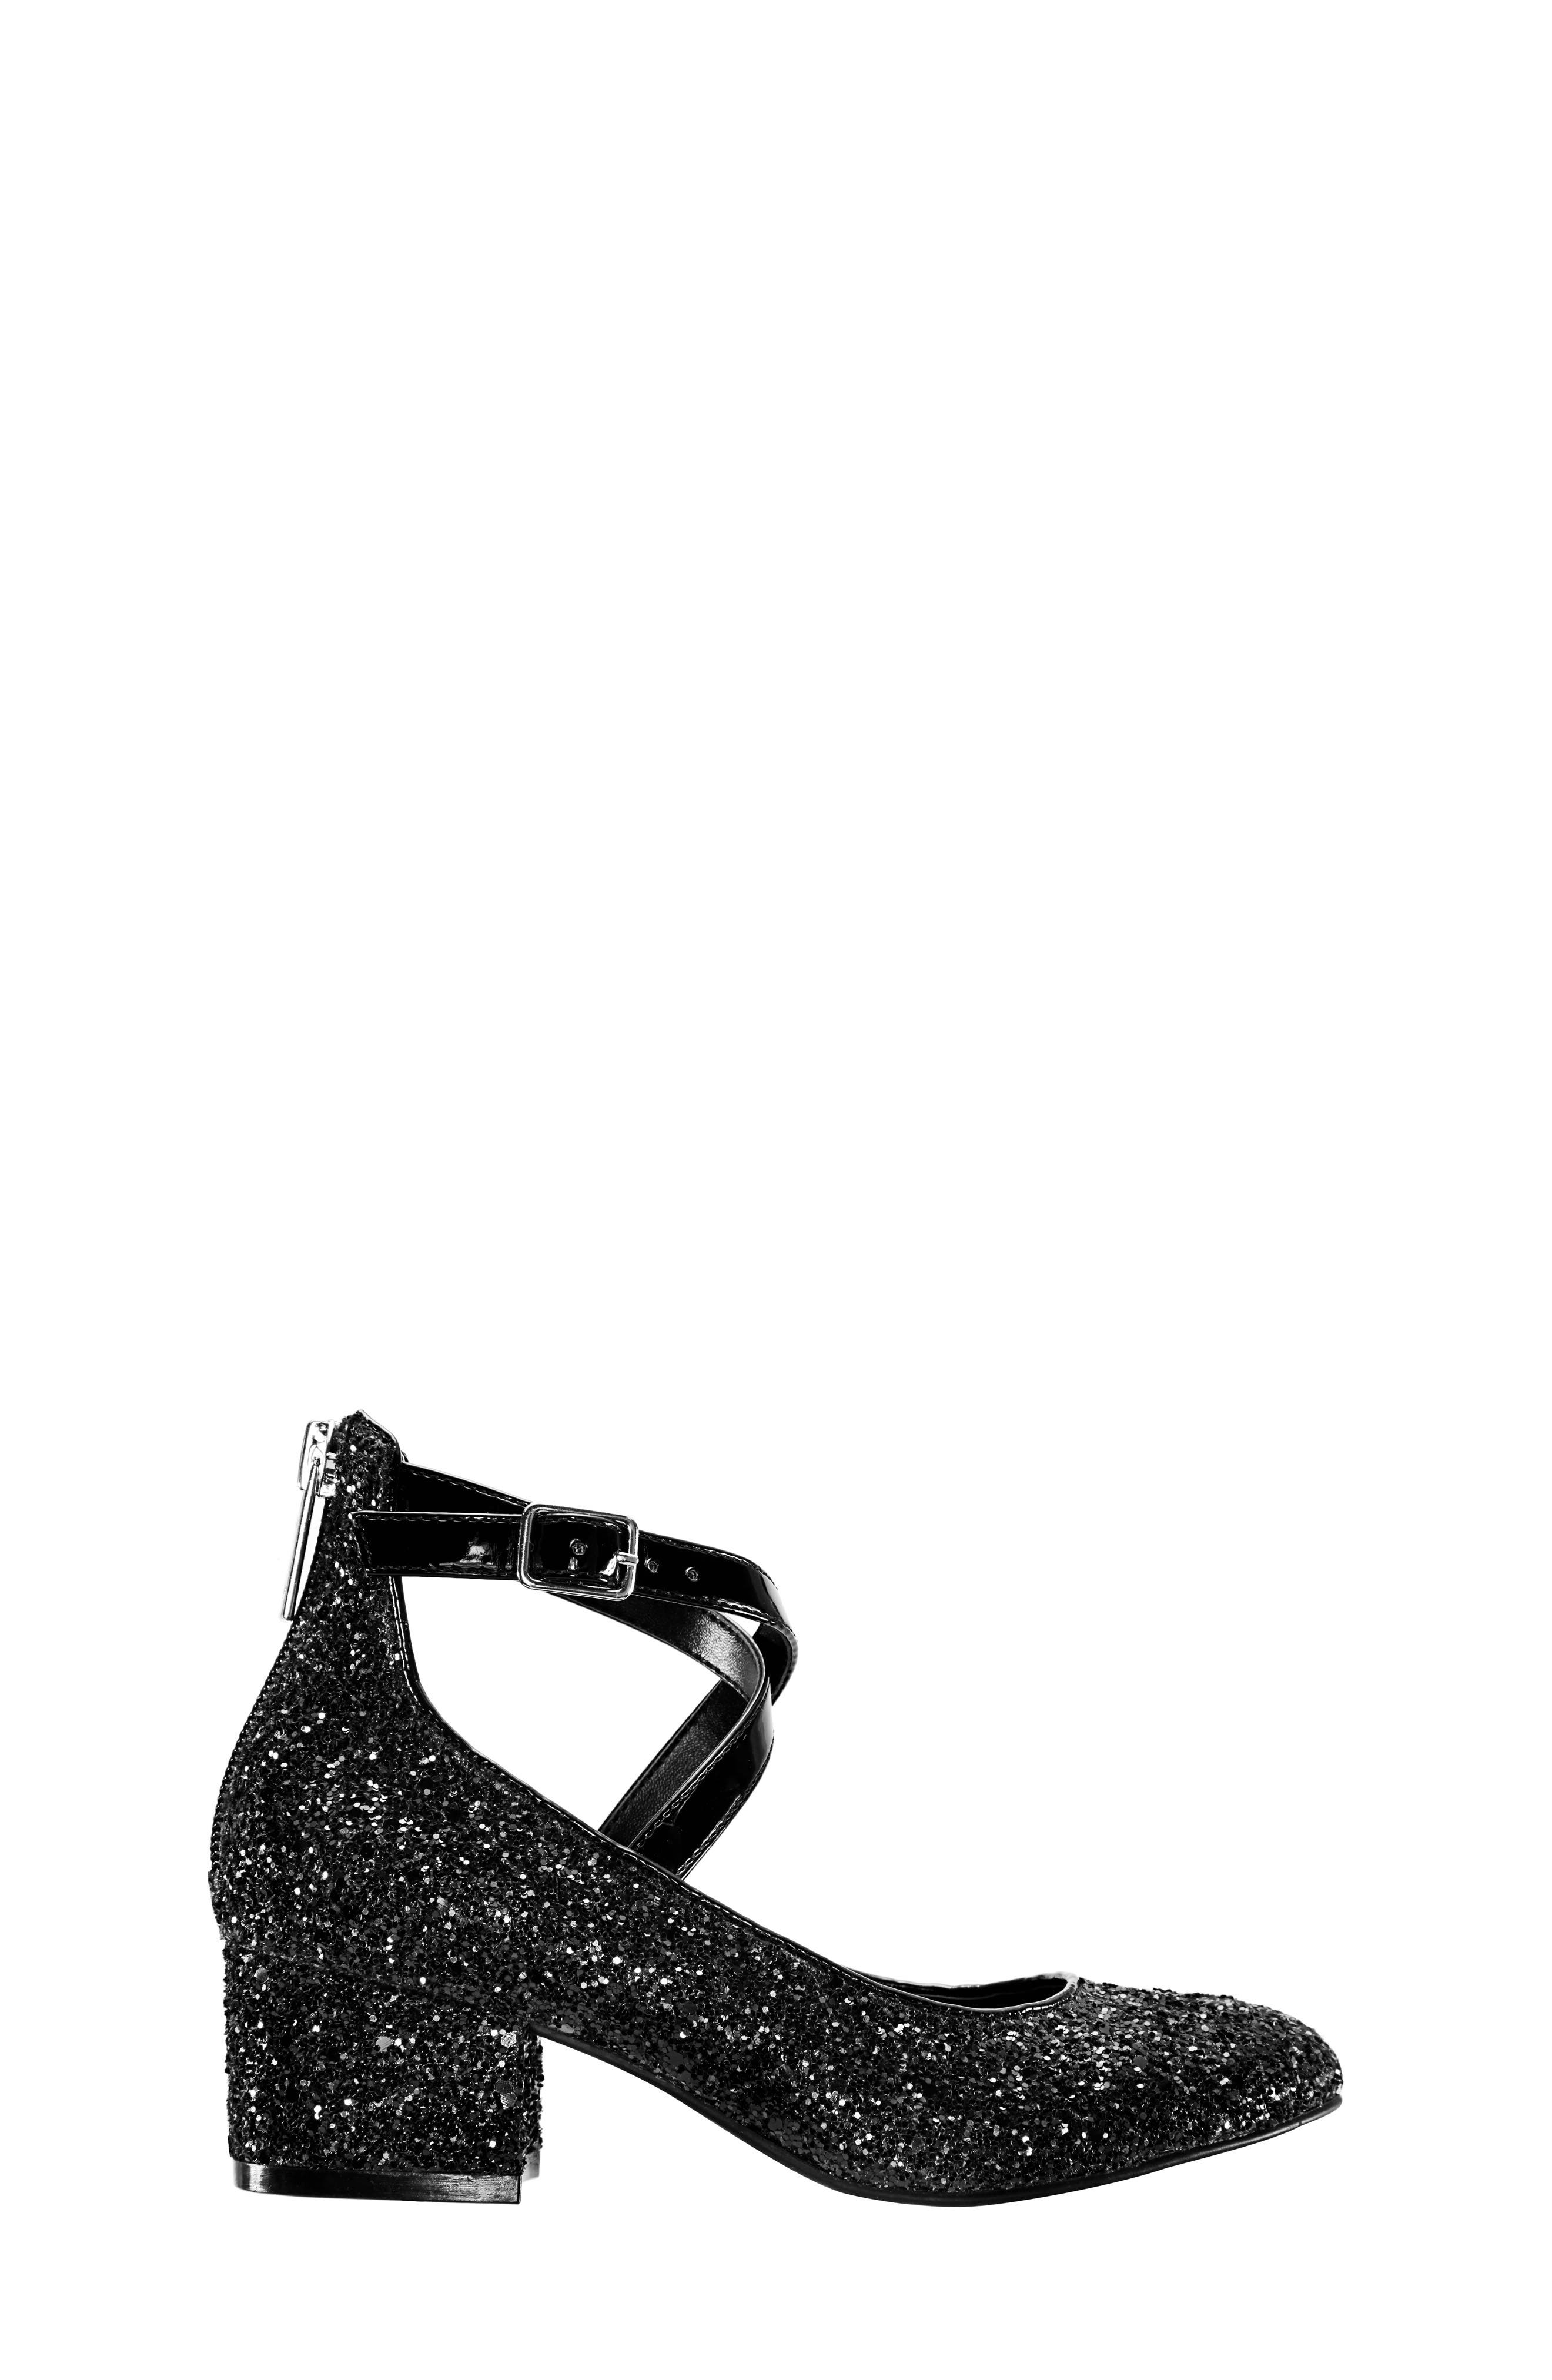 Deisy Glitter Block Heel Pump,                             Alternate thumbnail 3, color,                             BLACK CHUNK GLITTER/ PATENT